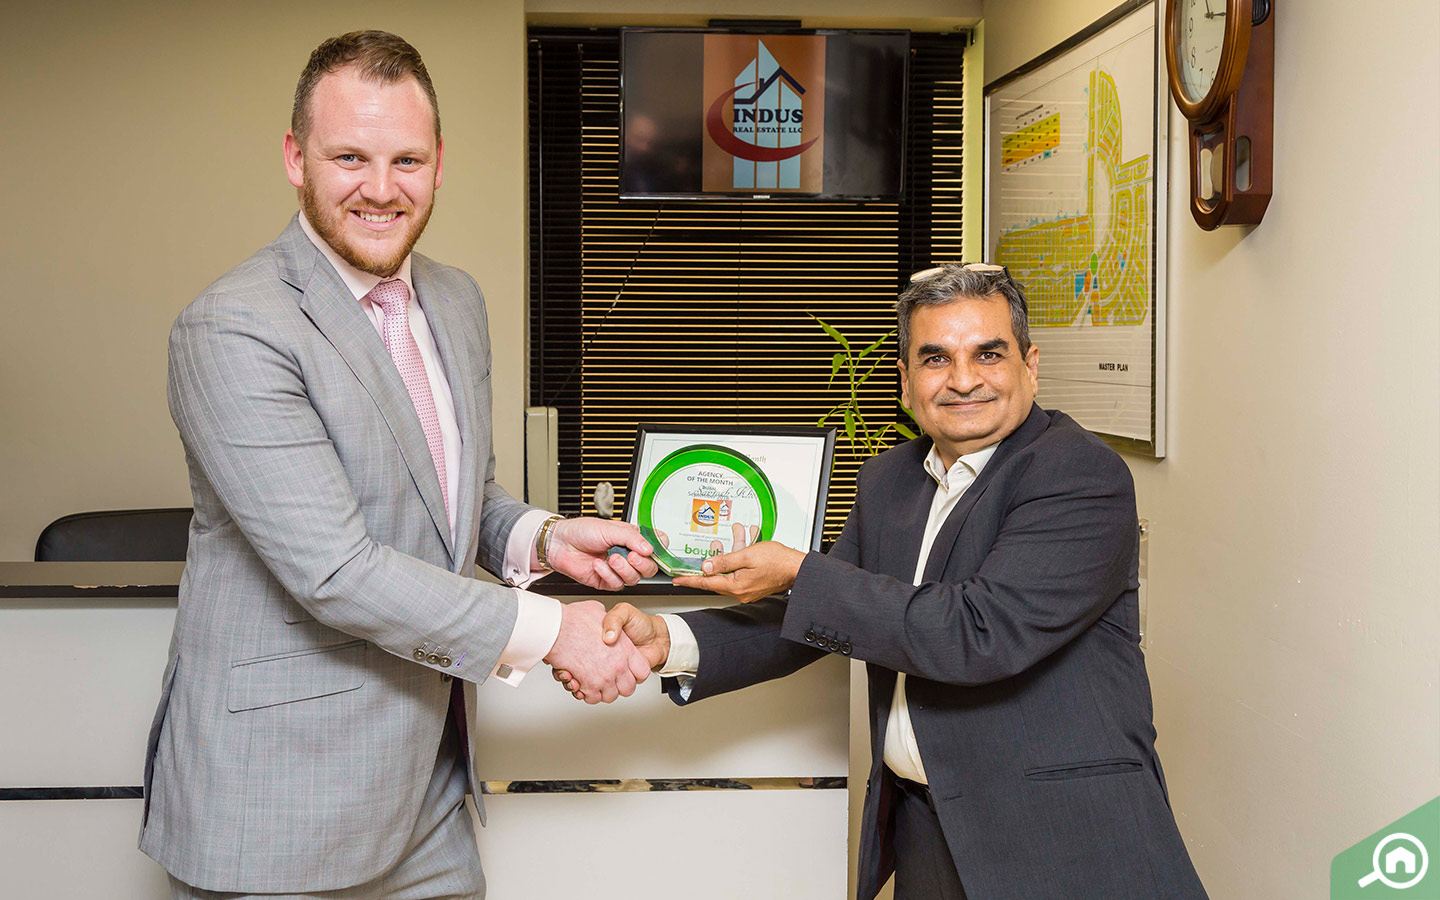 Award and achievements - Indus RealEstate